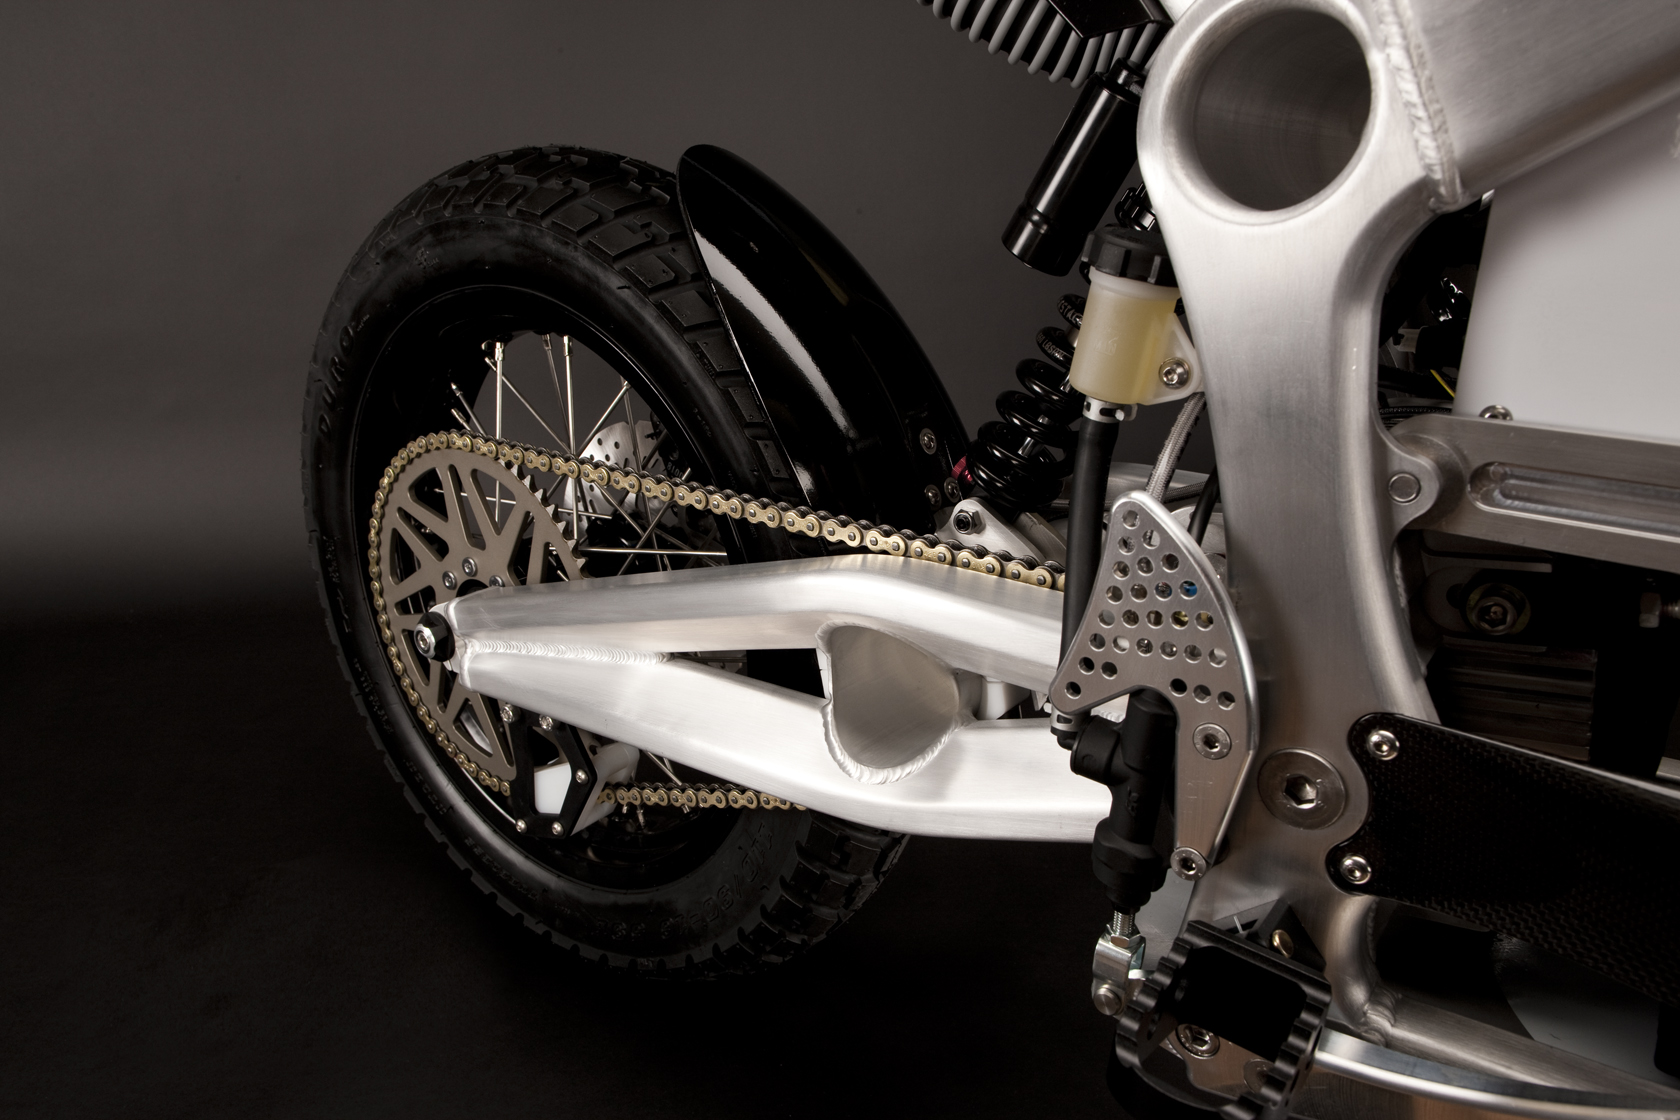 '.2010 Zero DS Electric Motorcycle: Swingarm.'